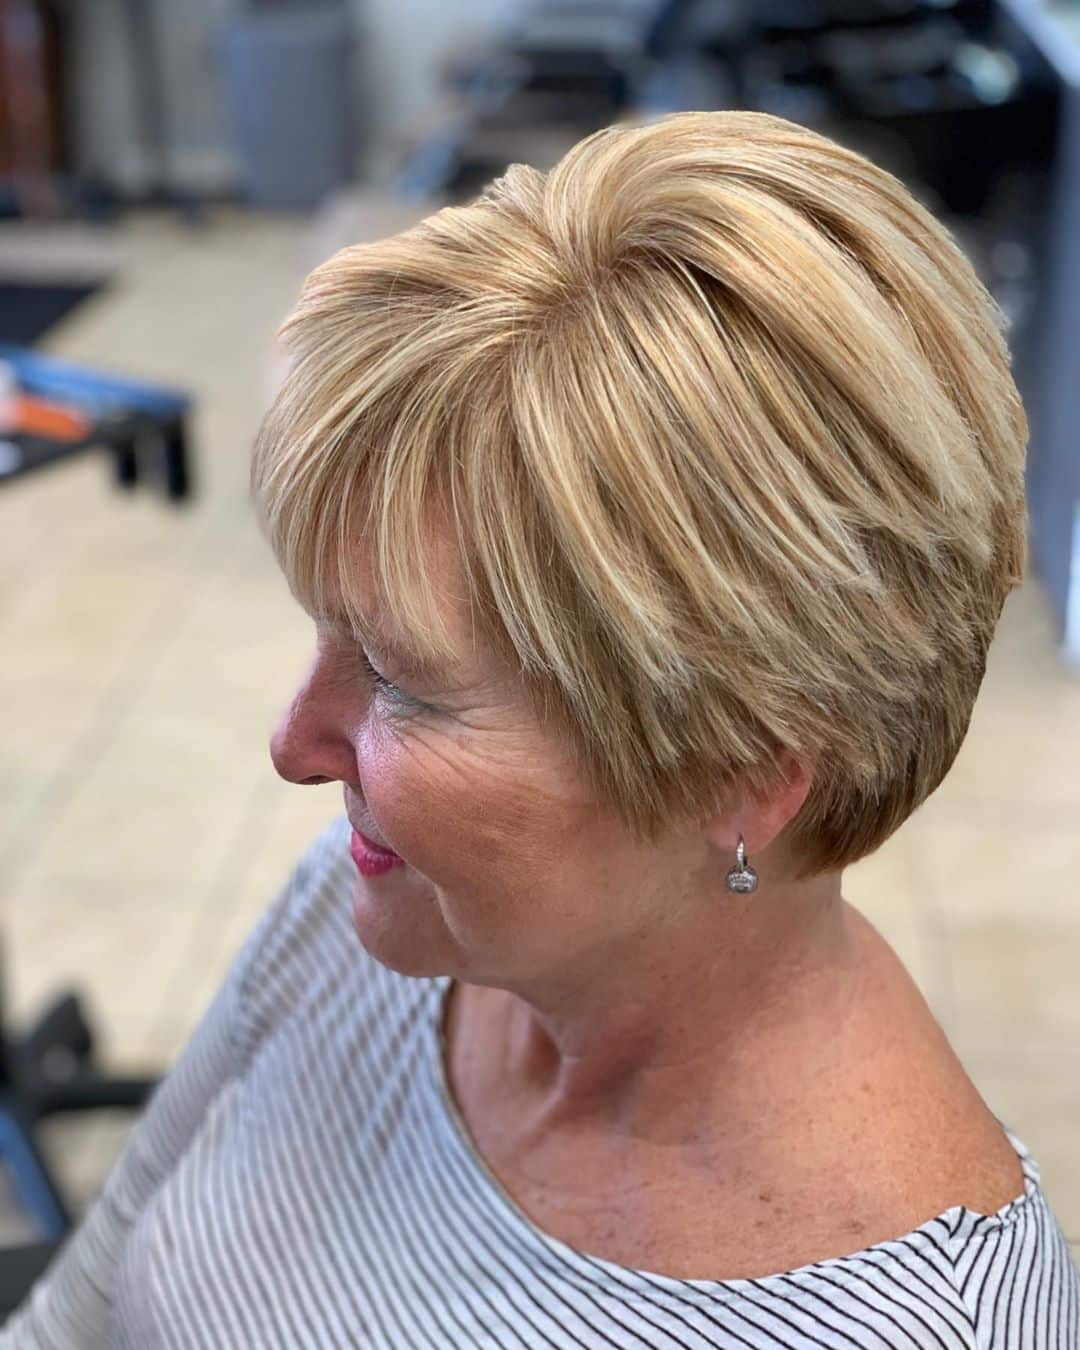 20 Modern Haircuts for Women Over 20 to Look Younger Pictures + Tips